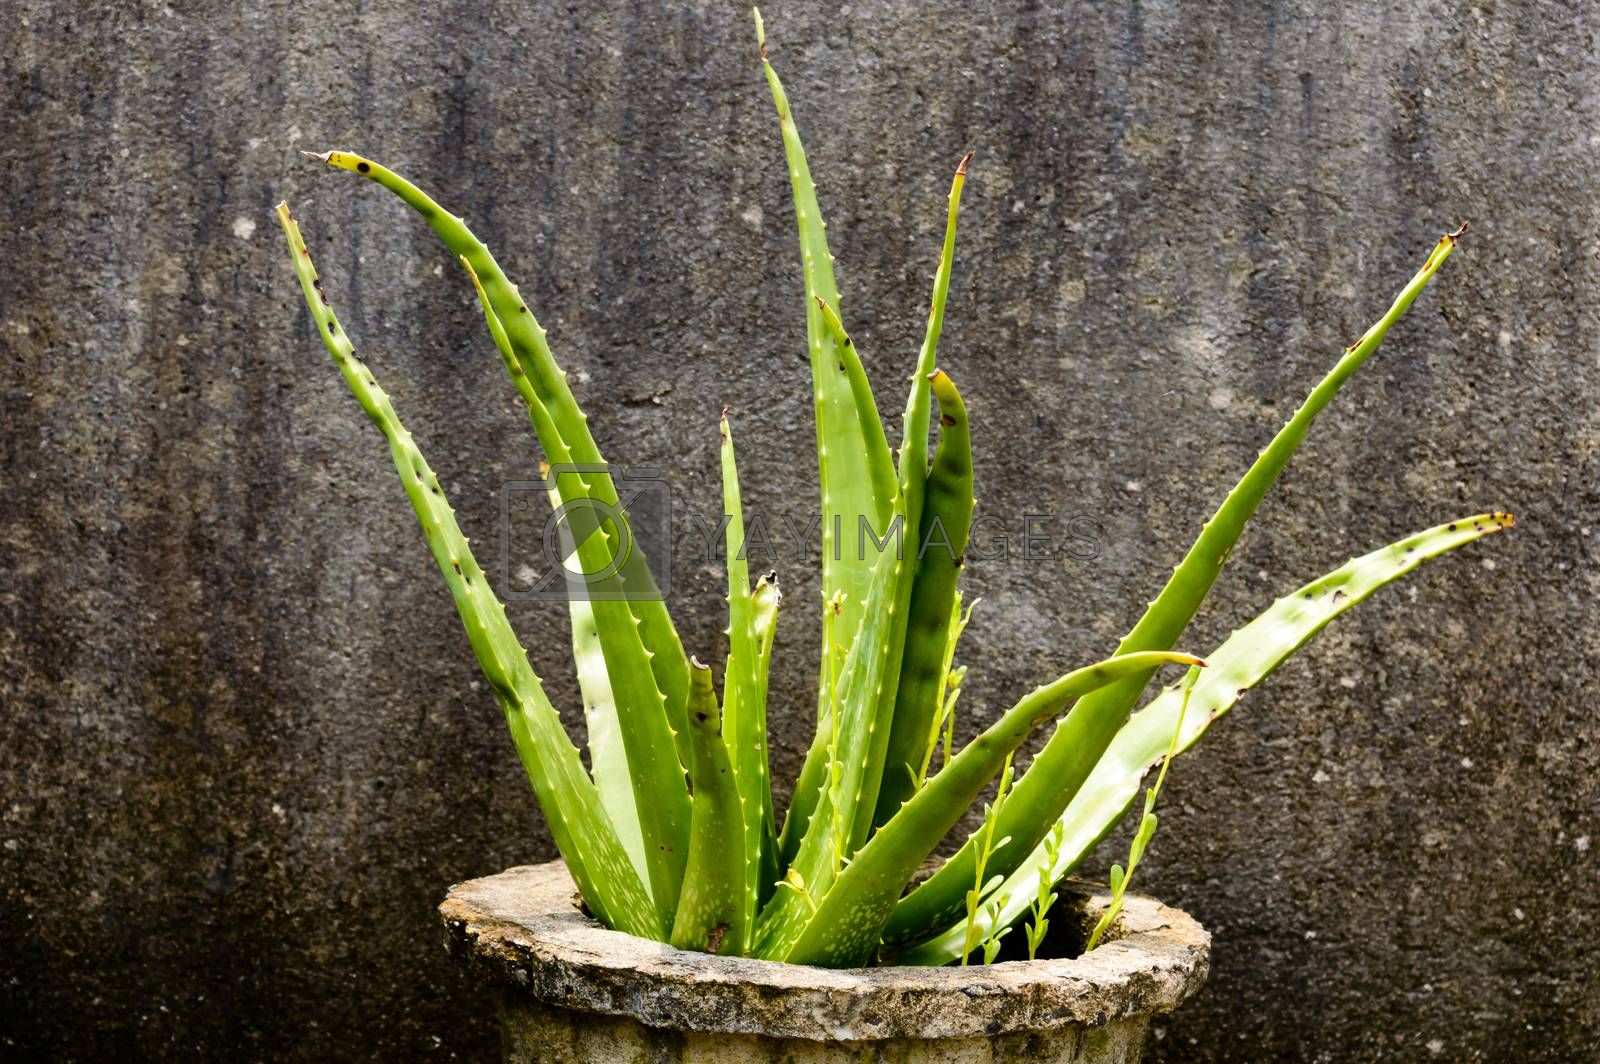 House plant tubers. Houseplant aloe vera plant with green leaves in direct sunlight against grungy isolated background. Design element. Copy space room for text.